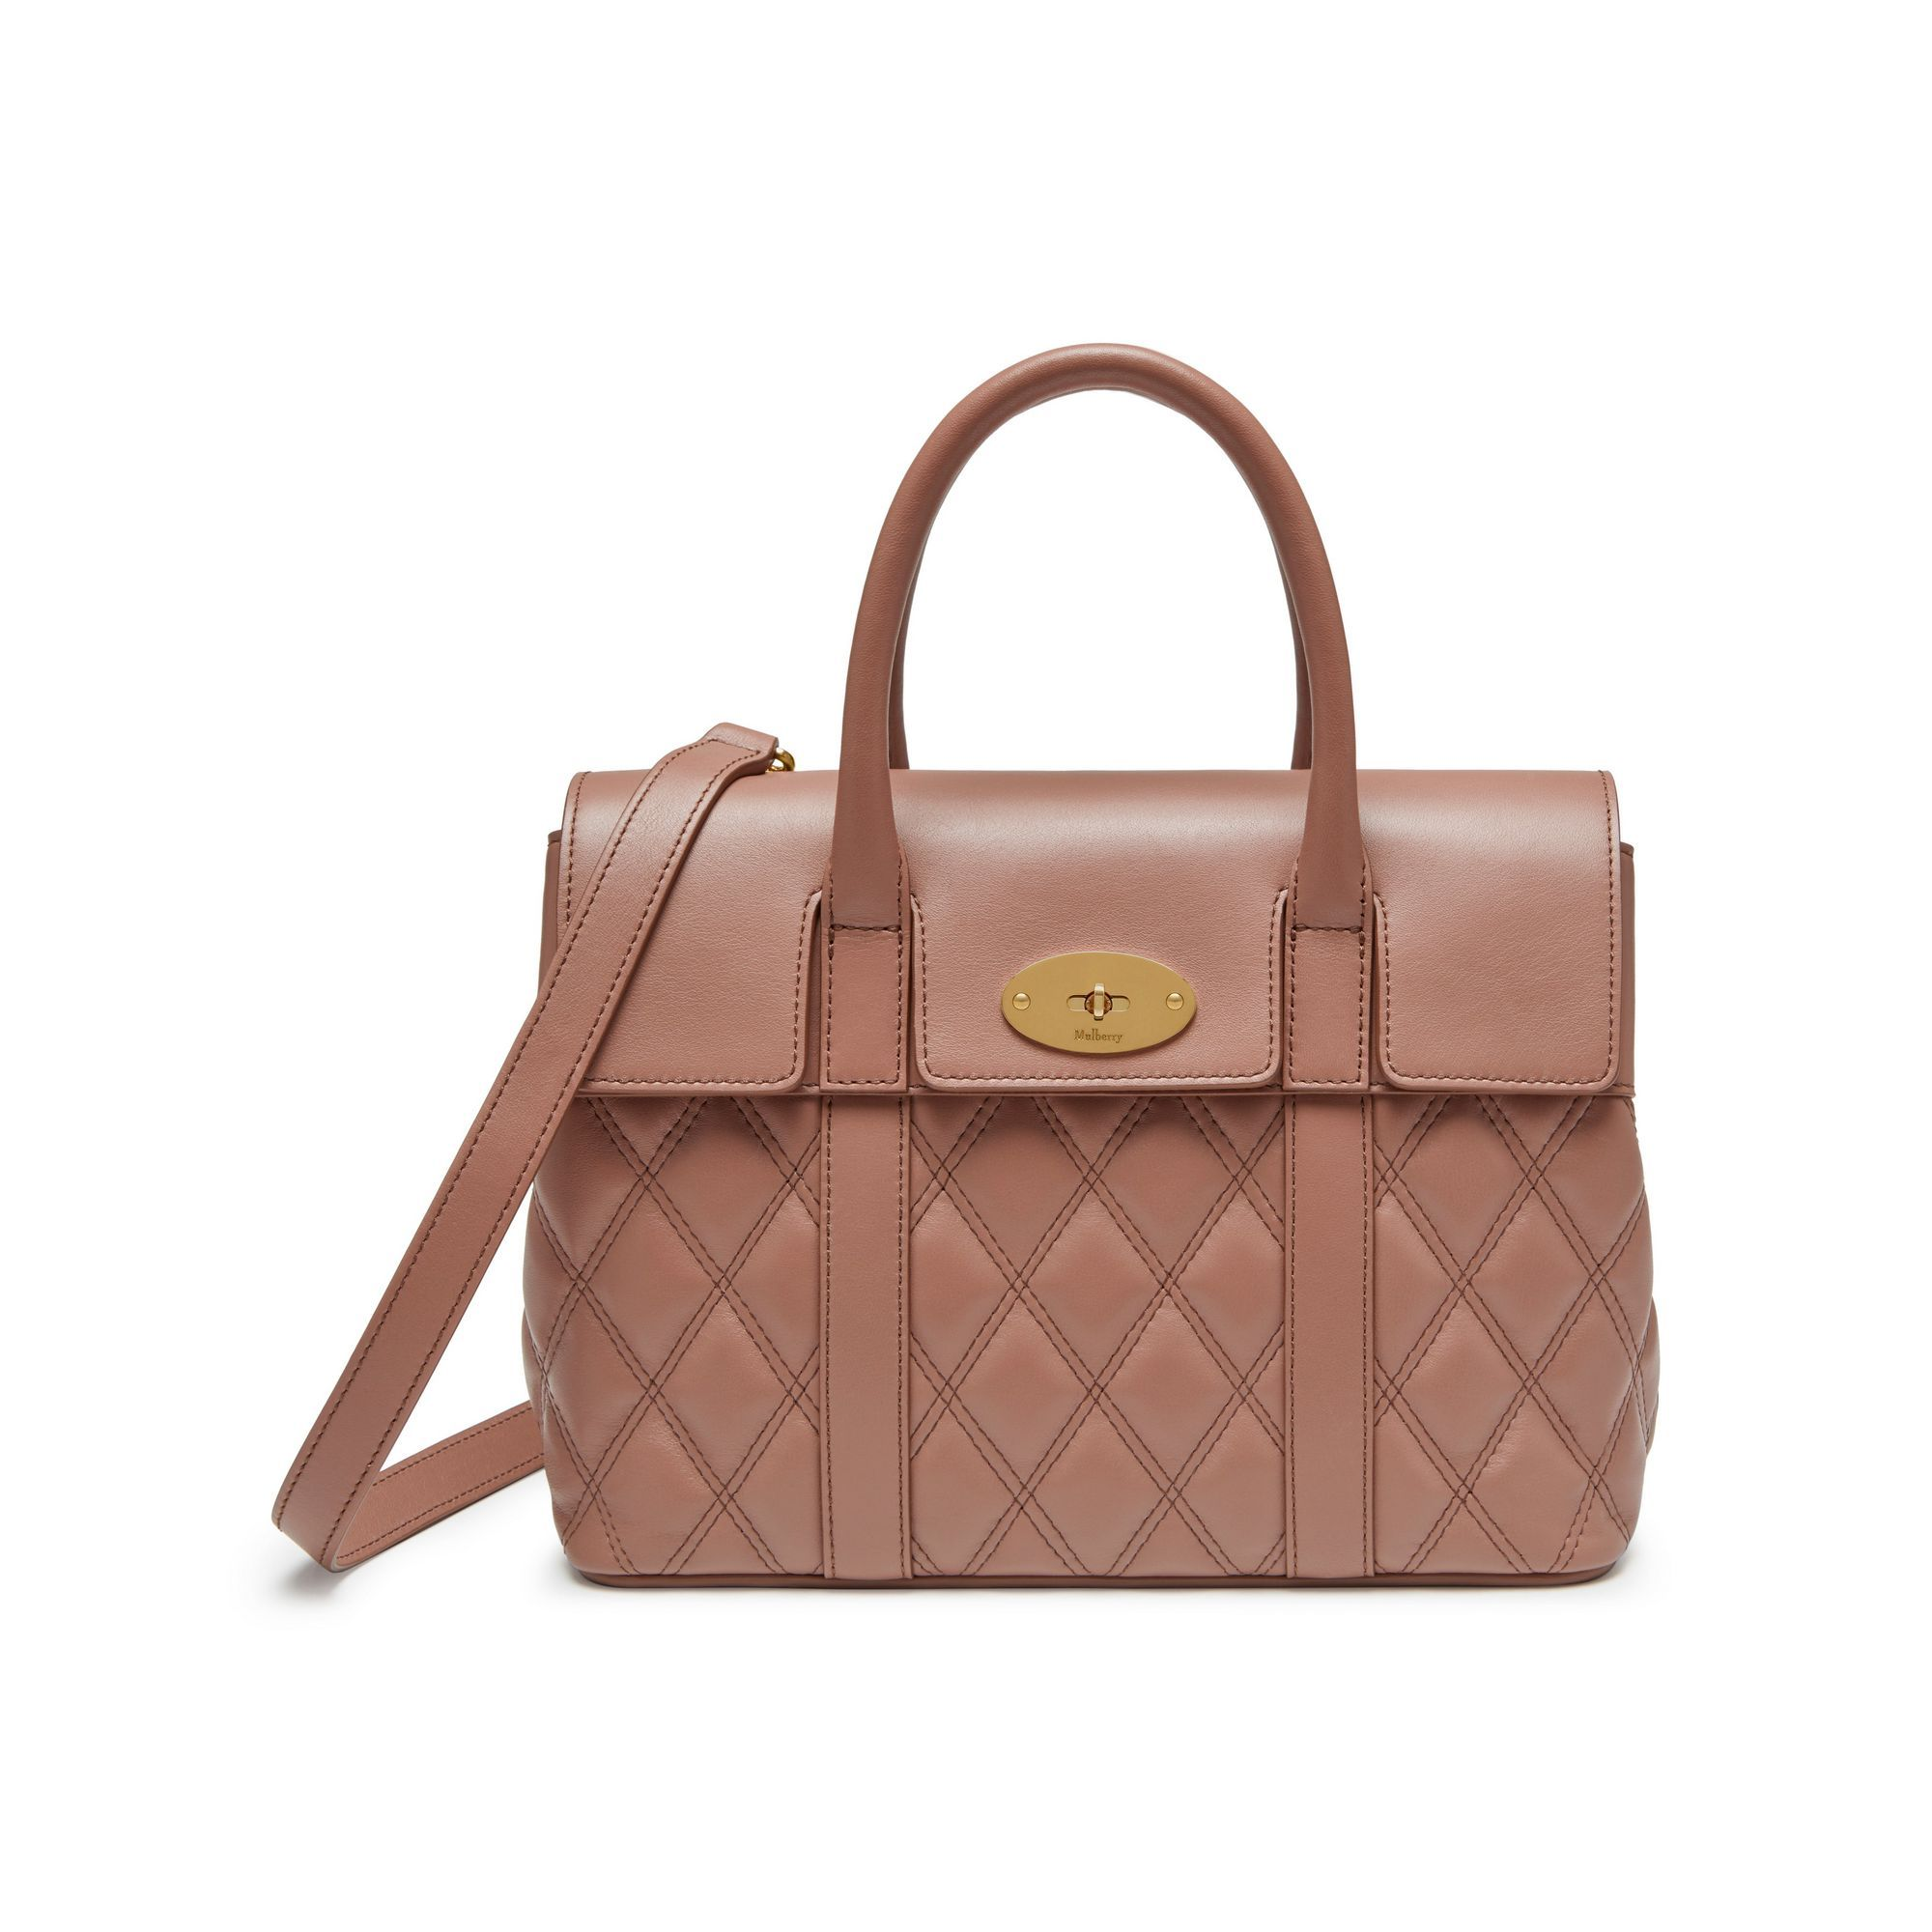 19249f5ef7f Shop the Small Bayswater in Quilted Dark Blush Leather at Mulberry.com. The  Bayswater